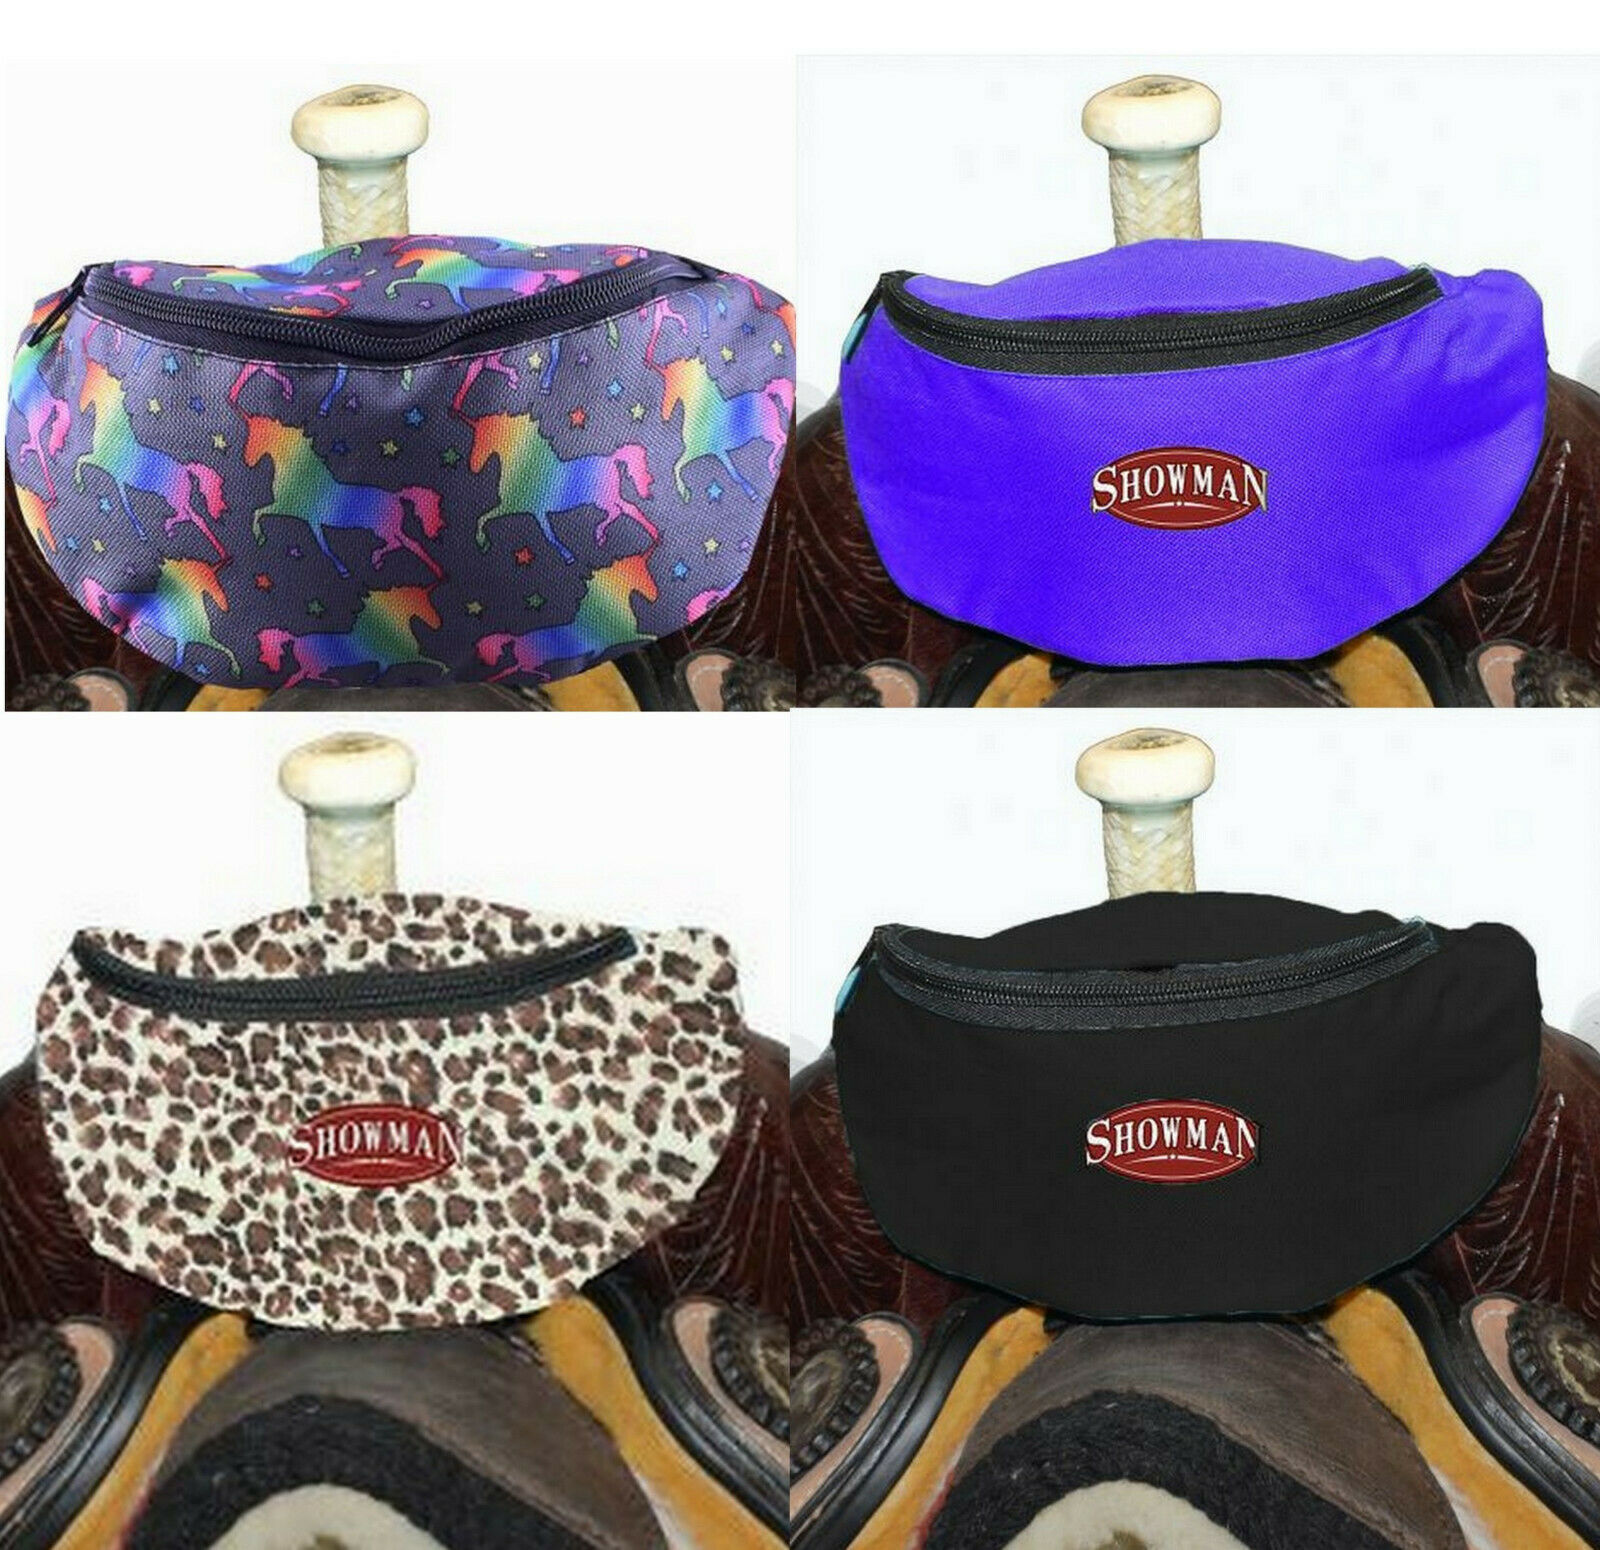 Western Horse Saddle Sack Lined Pouch / Bag Attaches to the